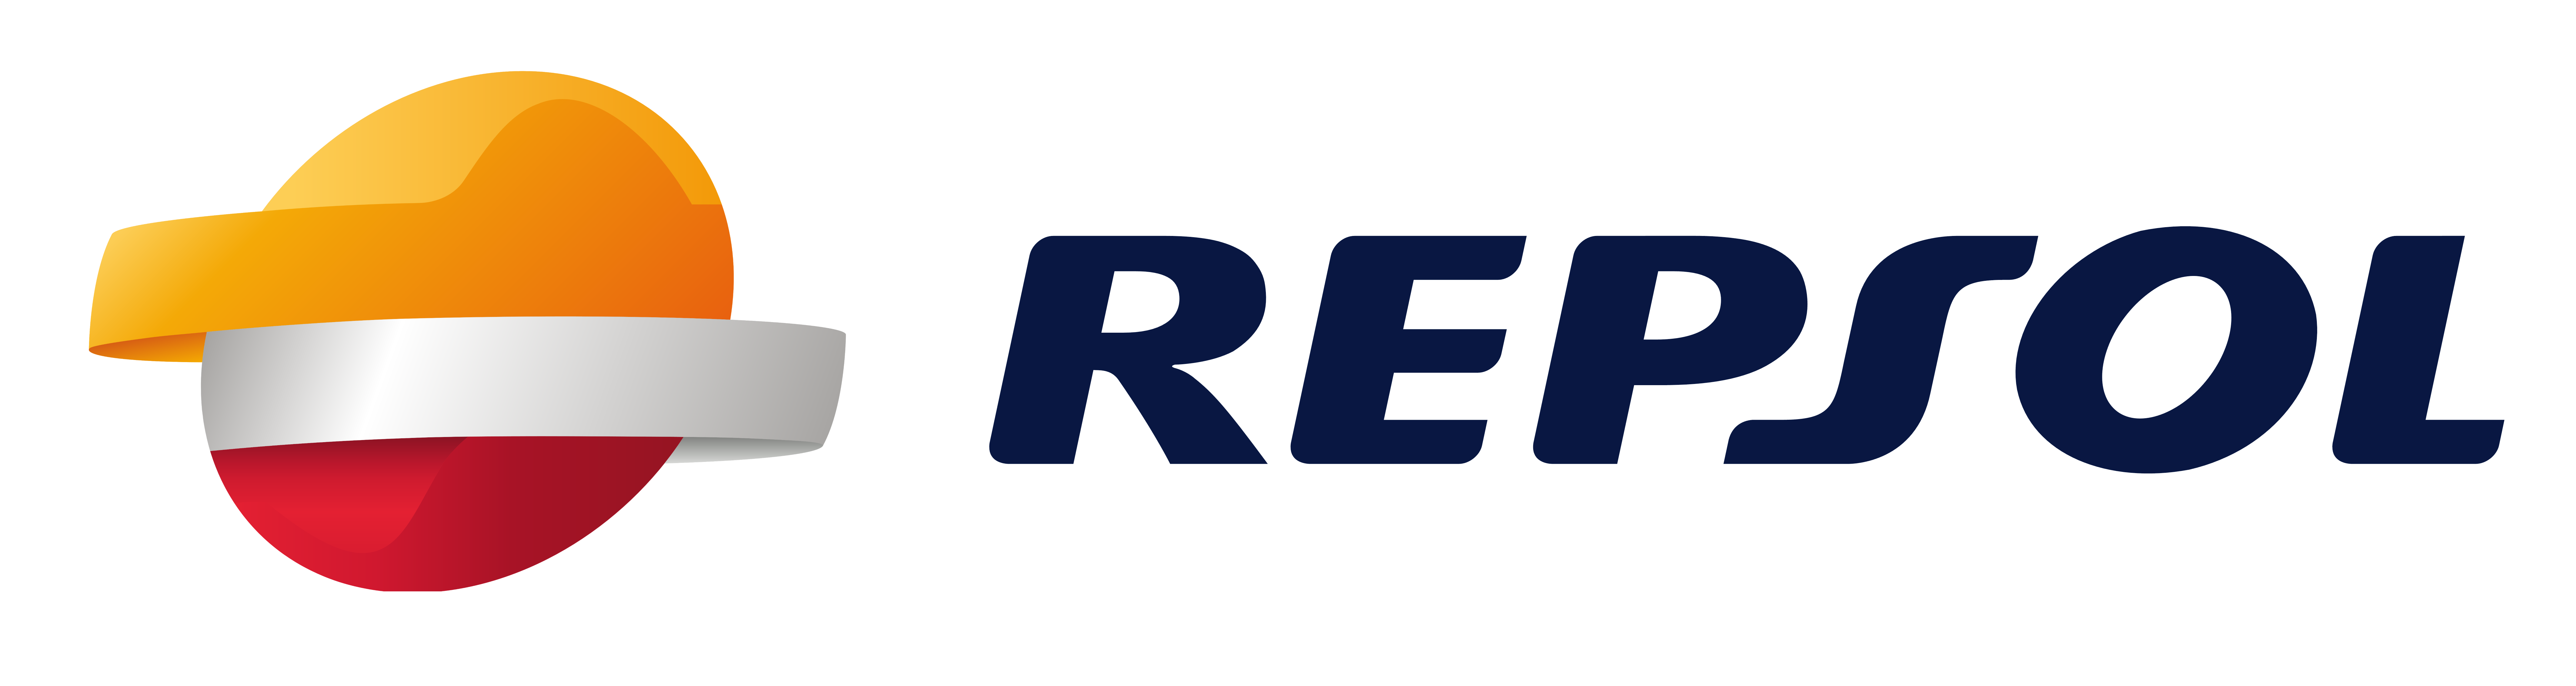 3452 Repsol Logo Download also Energy Efficiency Rebates likewise N 5yc1vZbrk7 together with 100464807 likewise 5807802980. on electric logo ideas